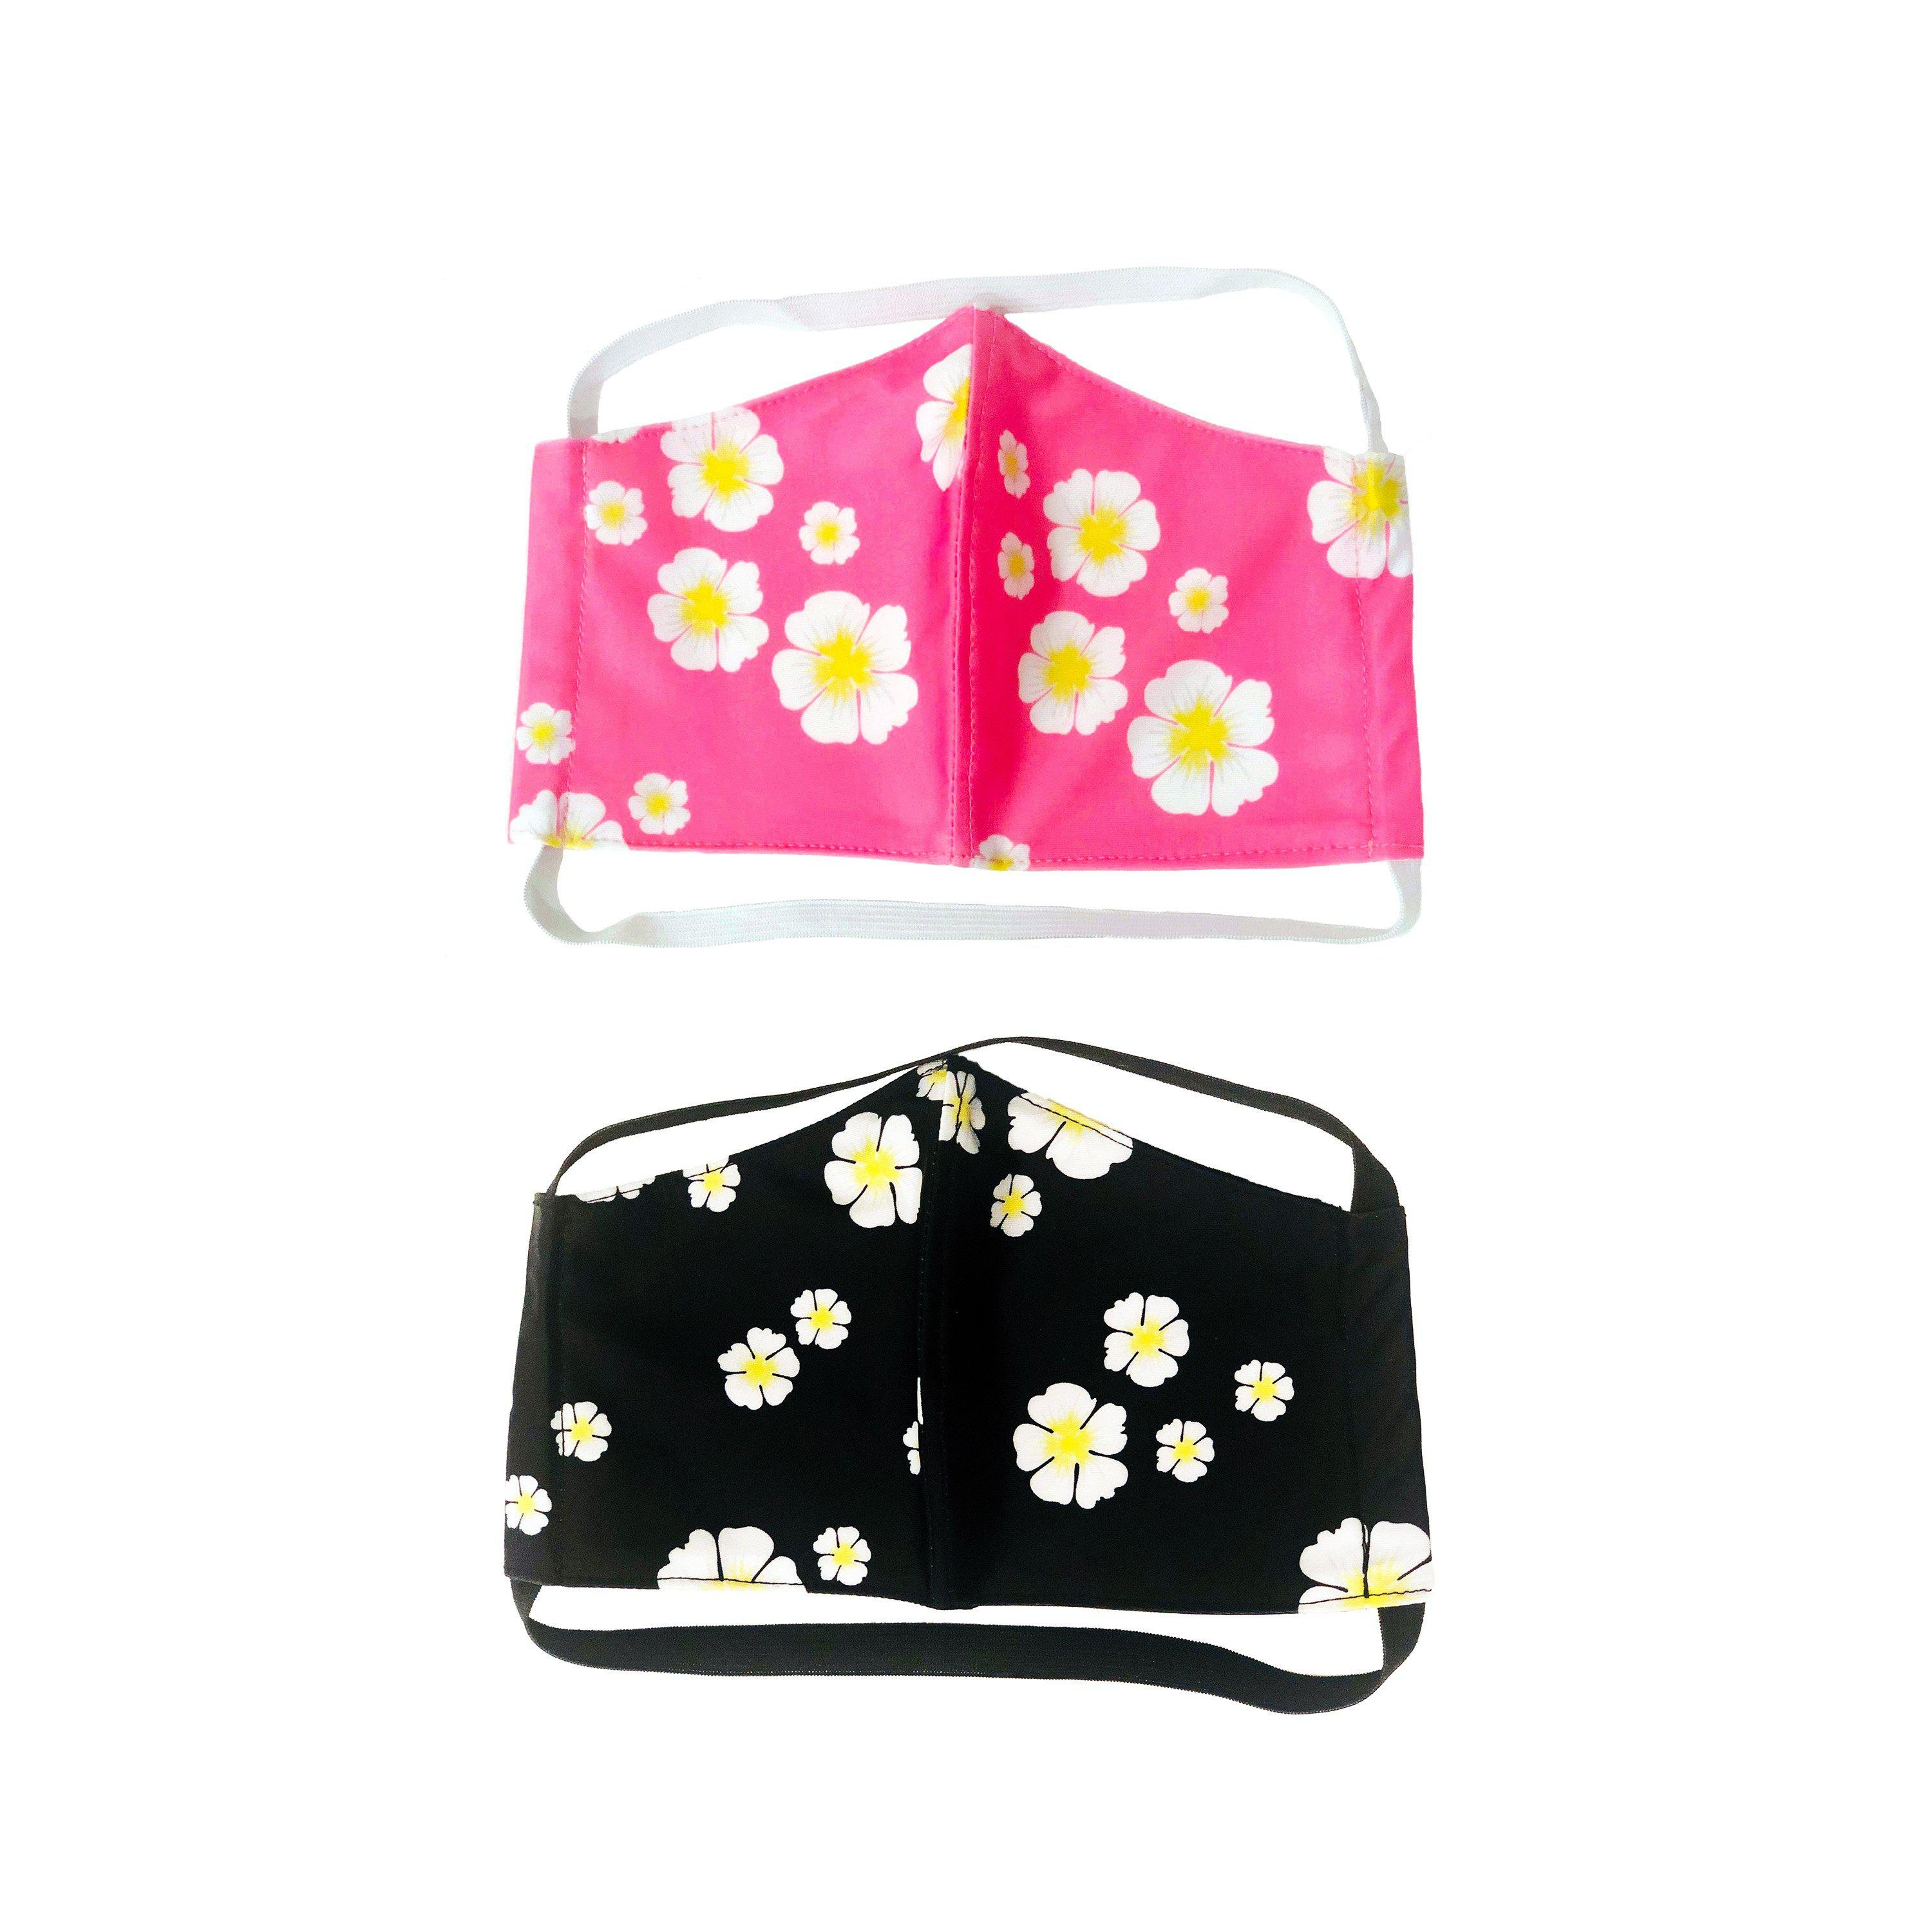 PACK OF TWO FLORAL FACE MASKS WITH FILTERS